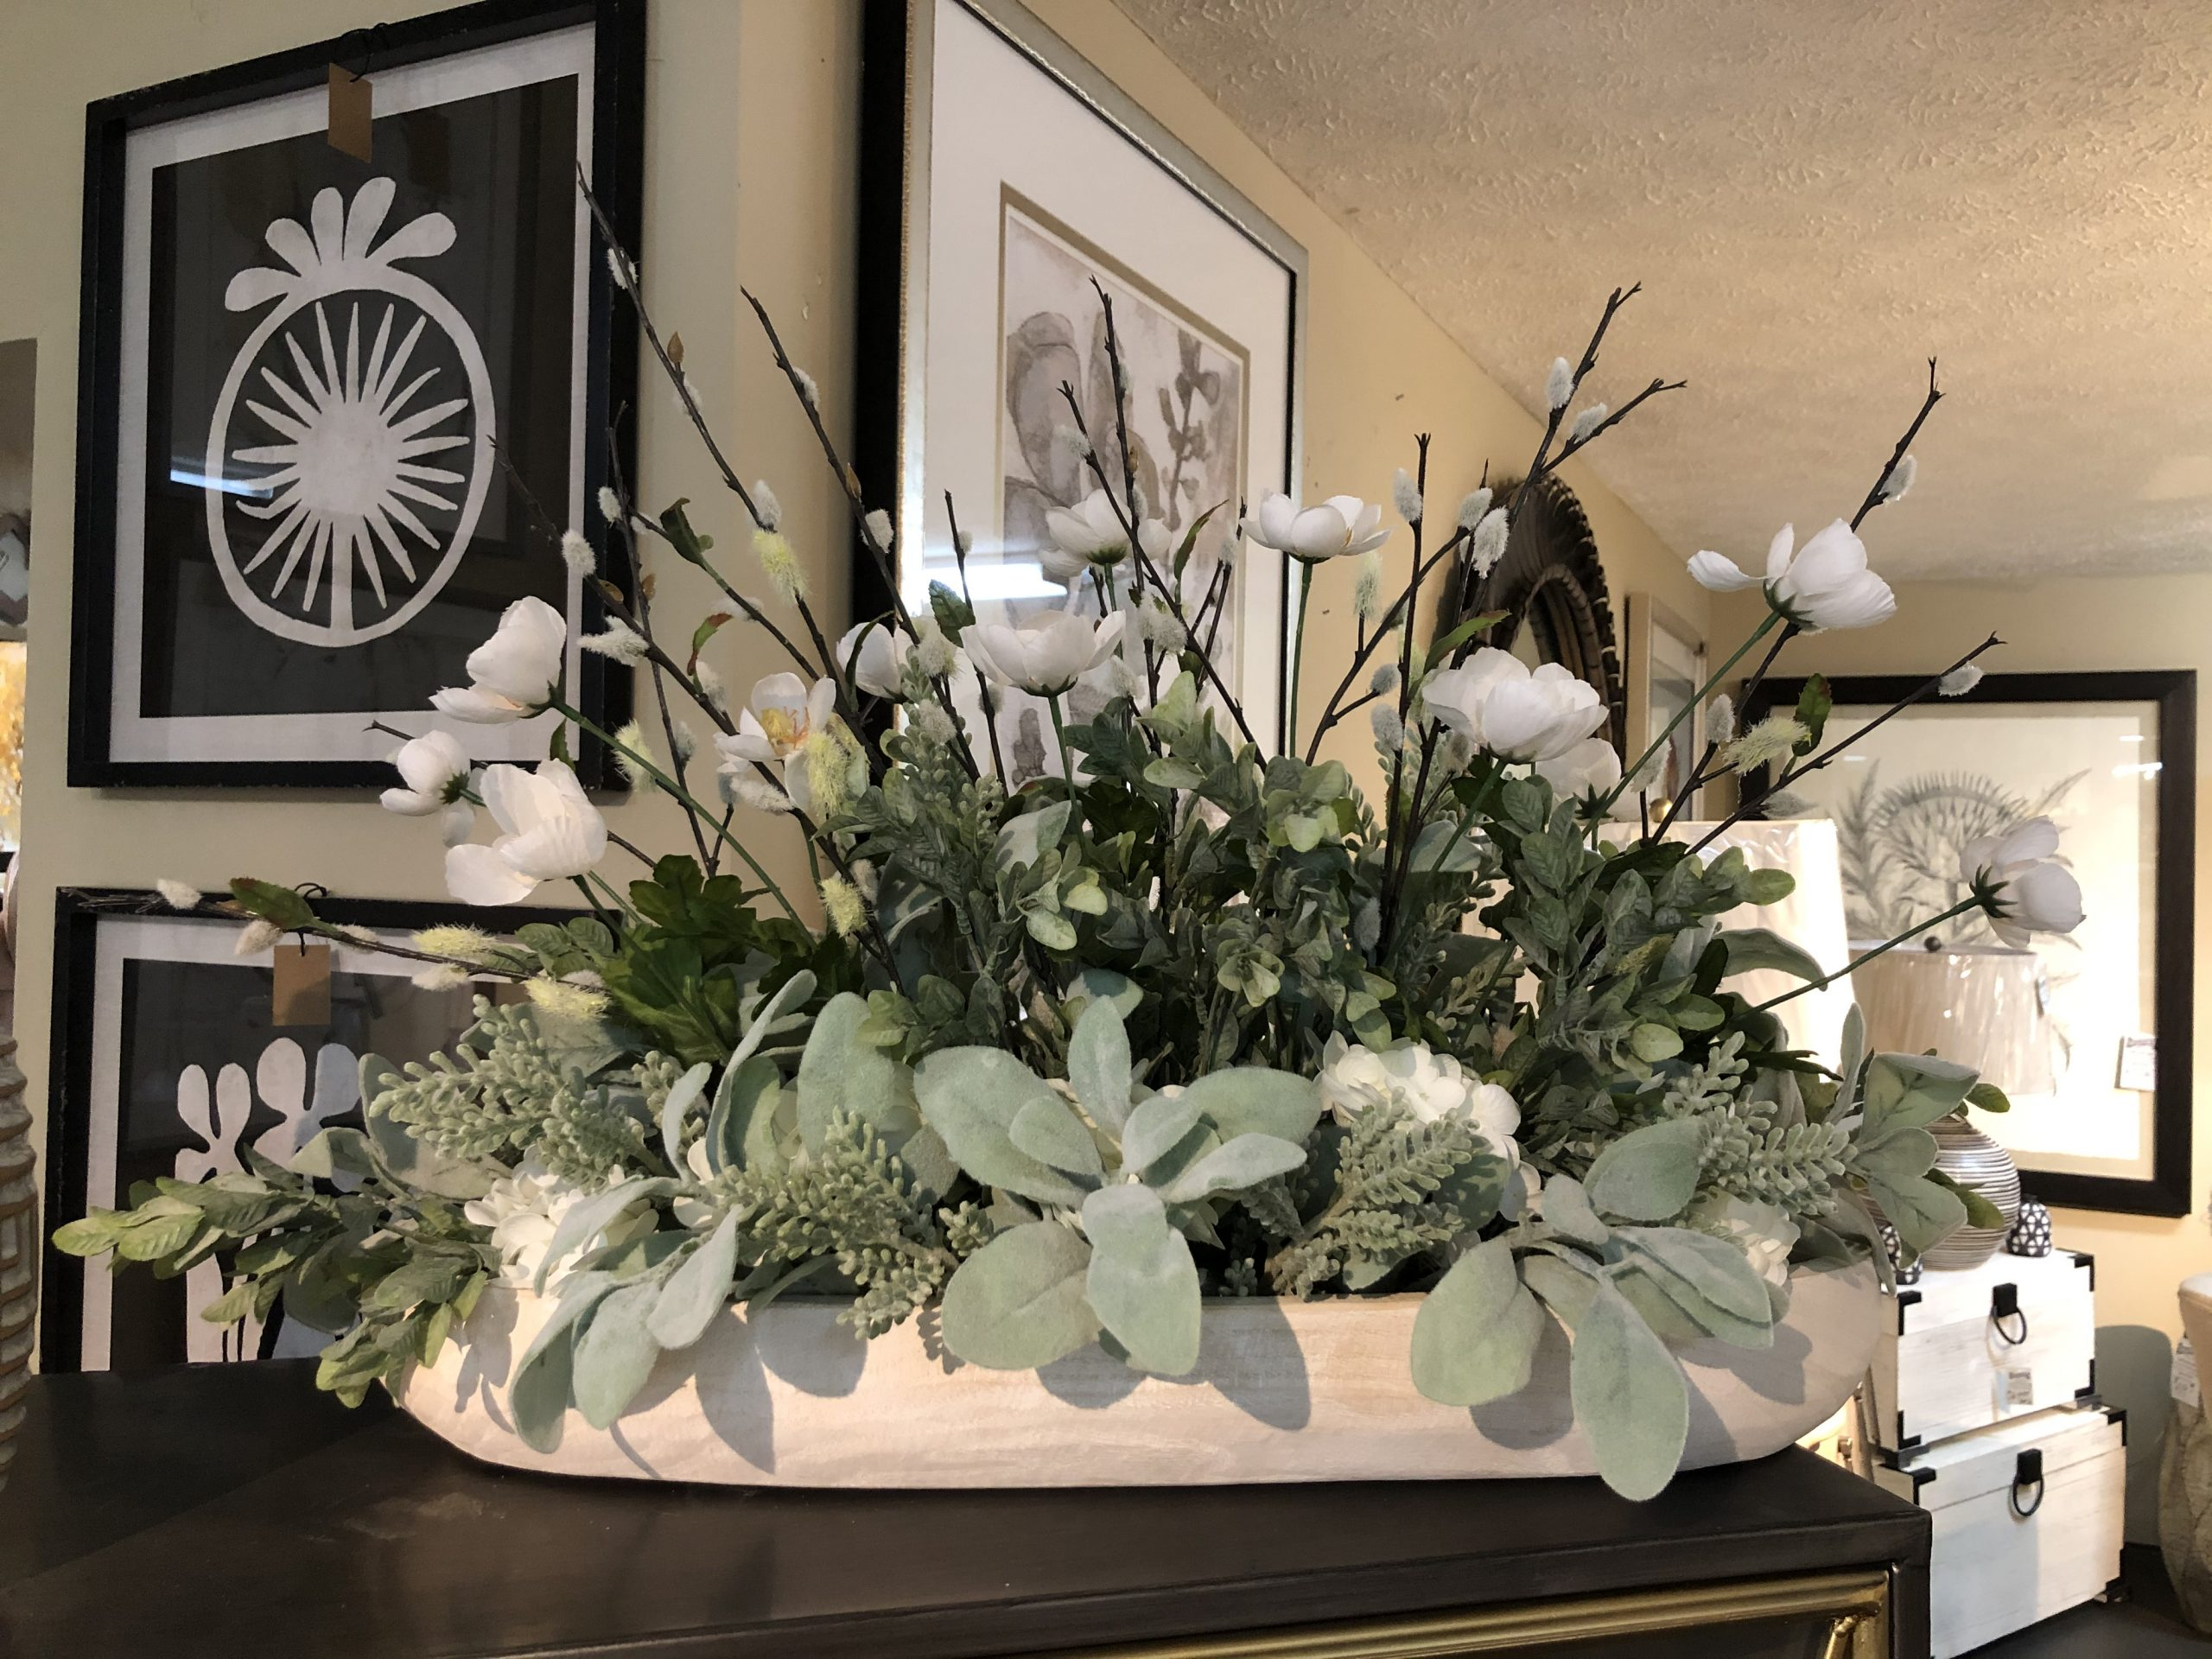 Whispie in white faux floral arrangement